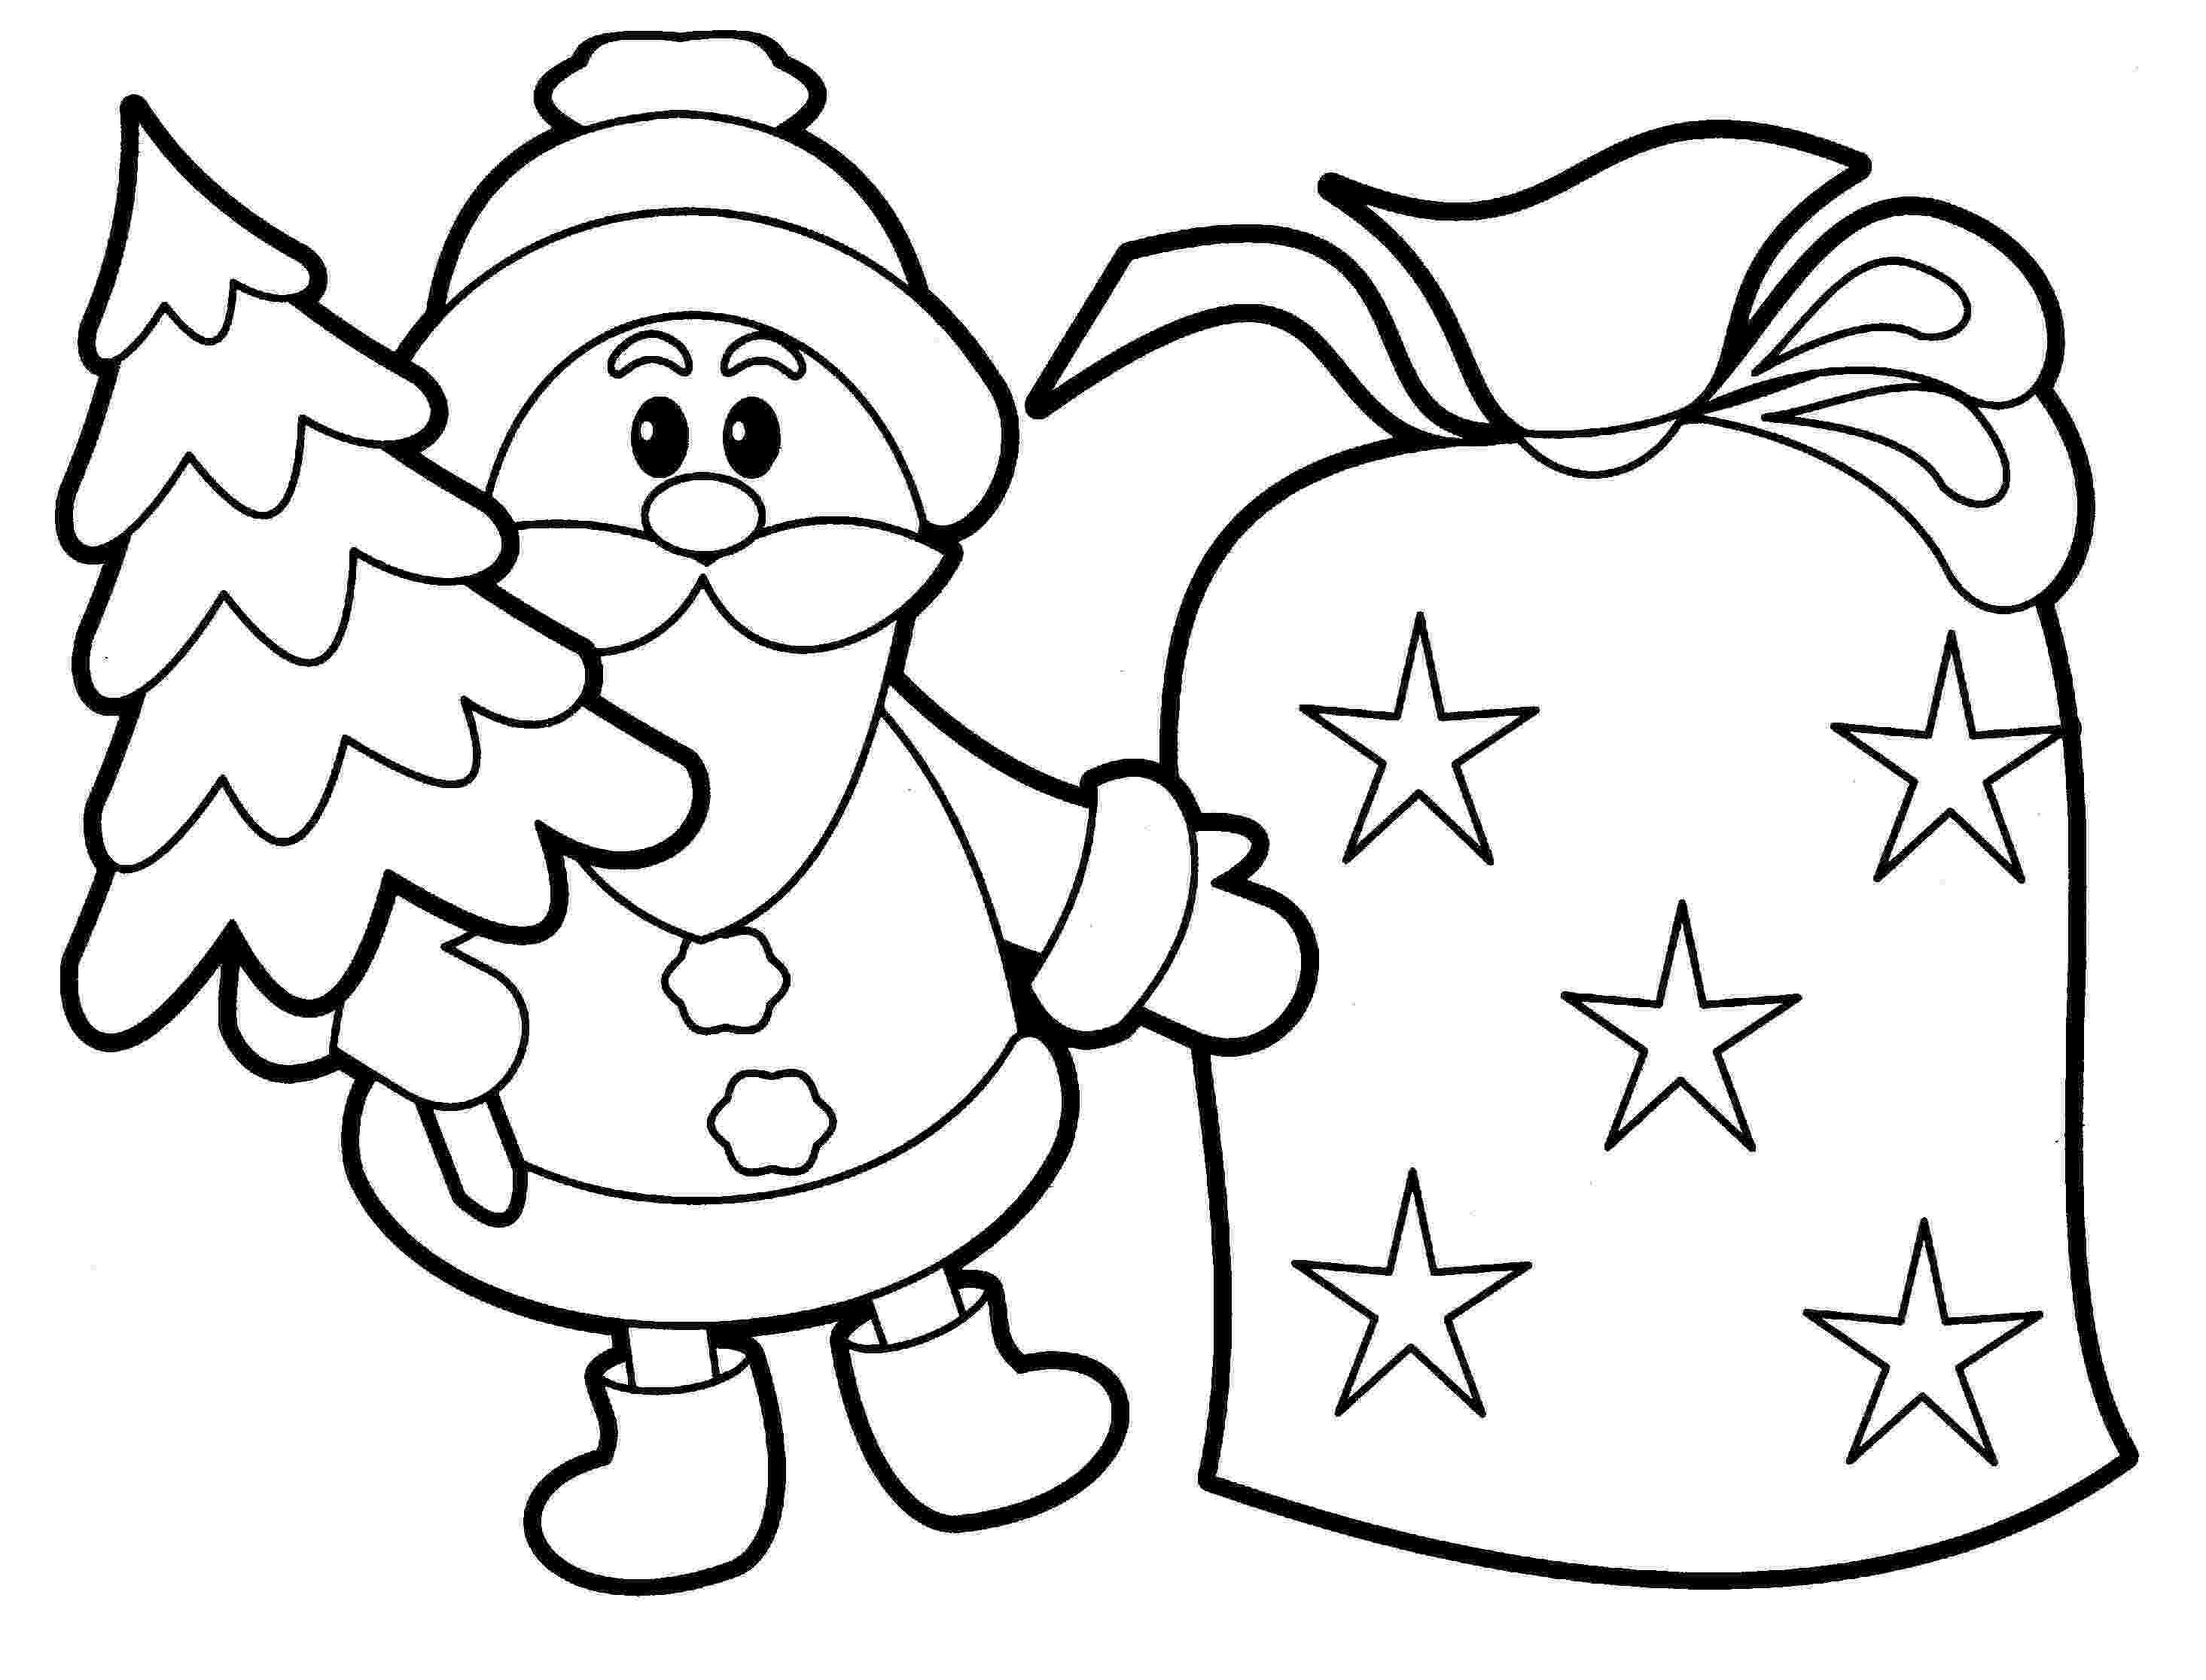 christmas colouring pages for preschoolers easy preschool coloring pages preschoolers christmas pages for colouring